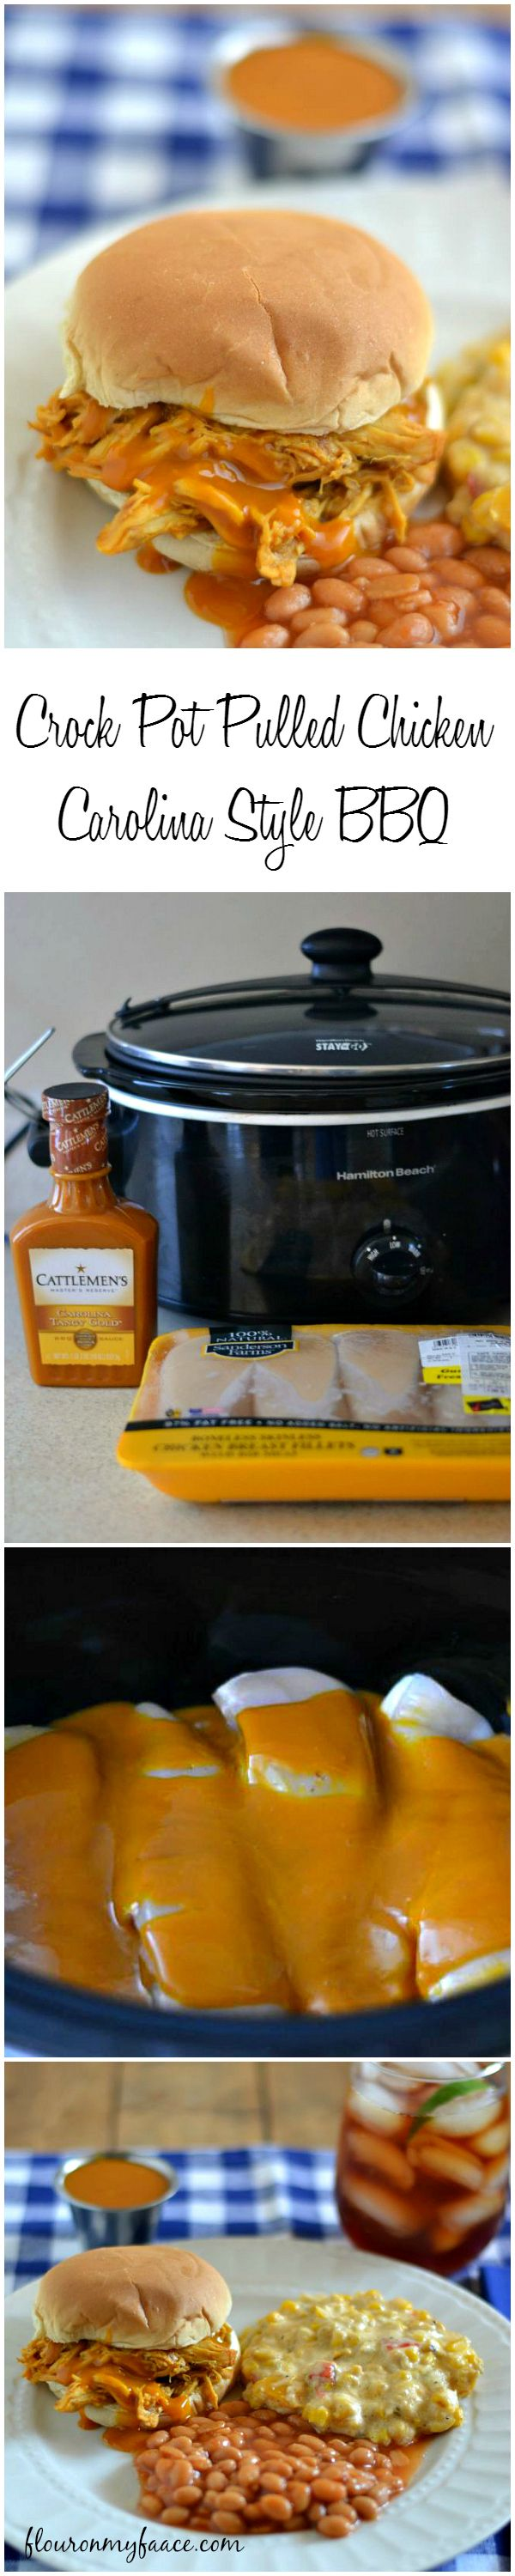 memorial day crockpot recipes